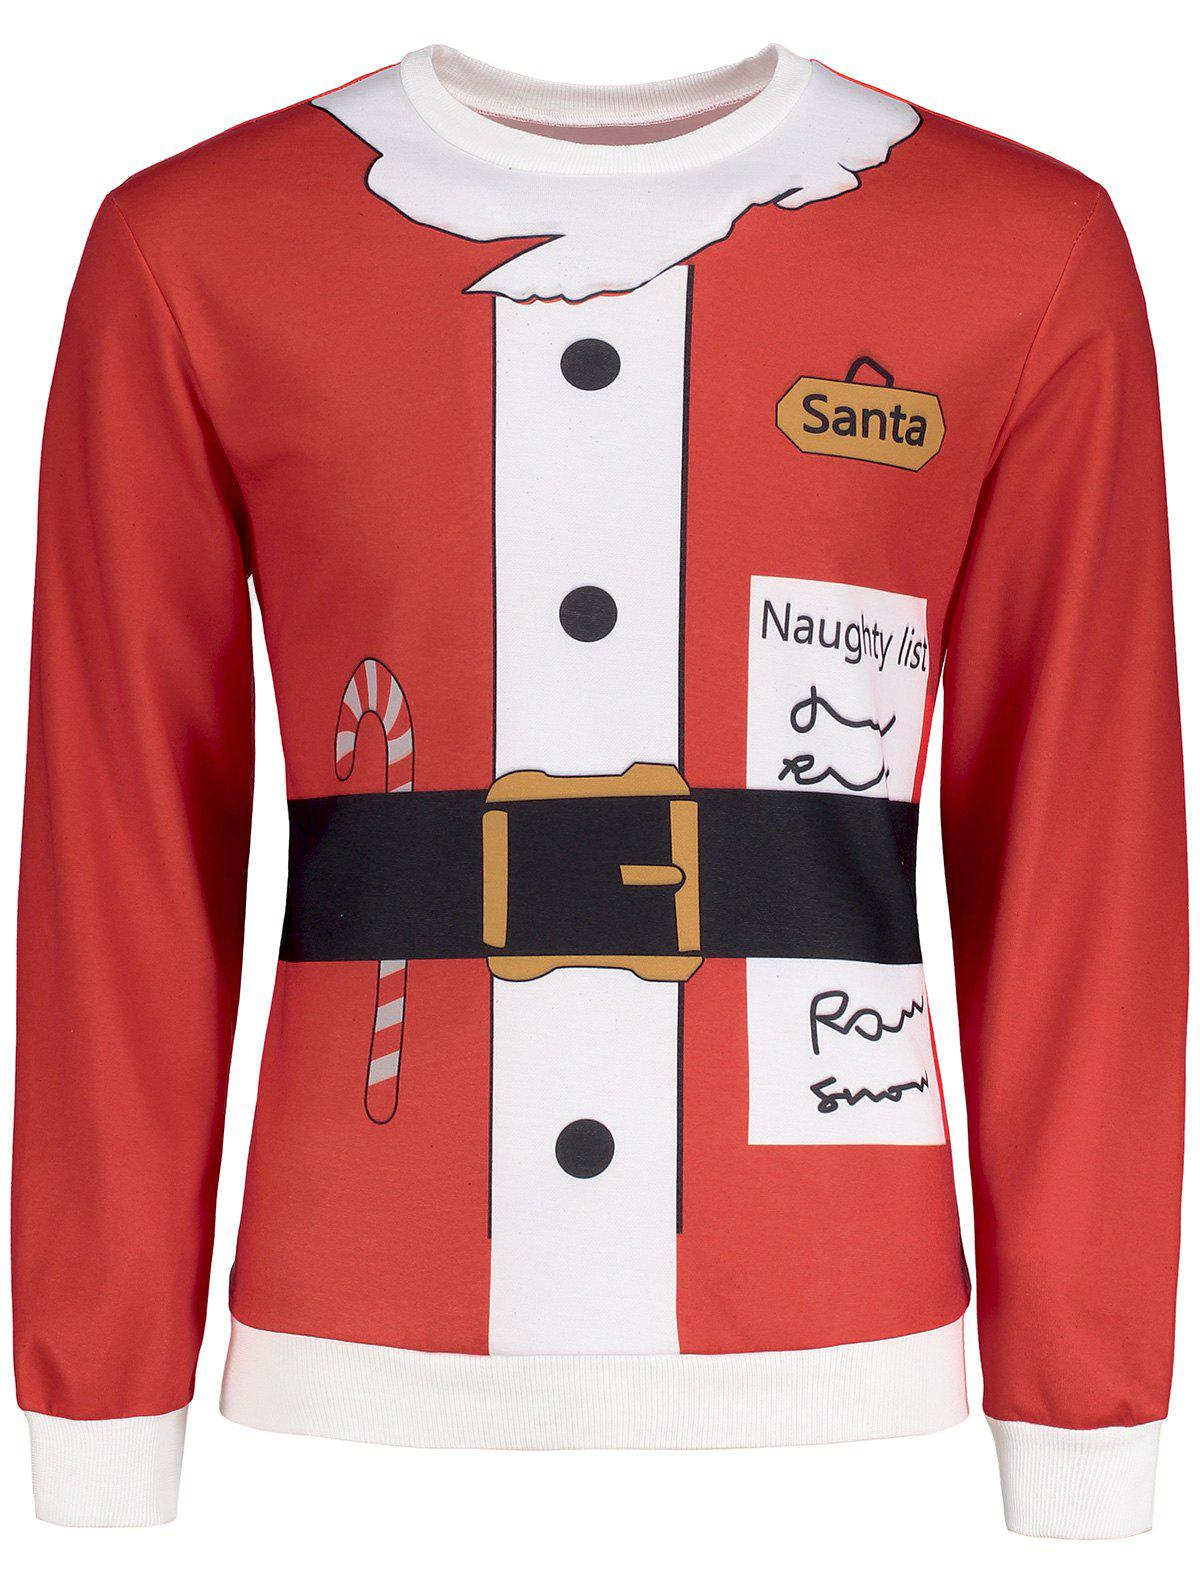 Santa Graphic Christmas Long Sleeve T-shirtMEN<br><br>Size: XL; Color: RED; Material: Polyester,Spandex; Sleeve Length: Full; Collar: Crew Neck; Style: Casual,Fashion; Pattern Type: Print; Season: Fall,Winter; Weight: 0.3850kg; Package Contents: 1 x T-shirt;